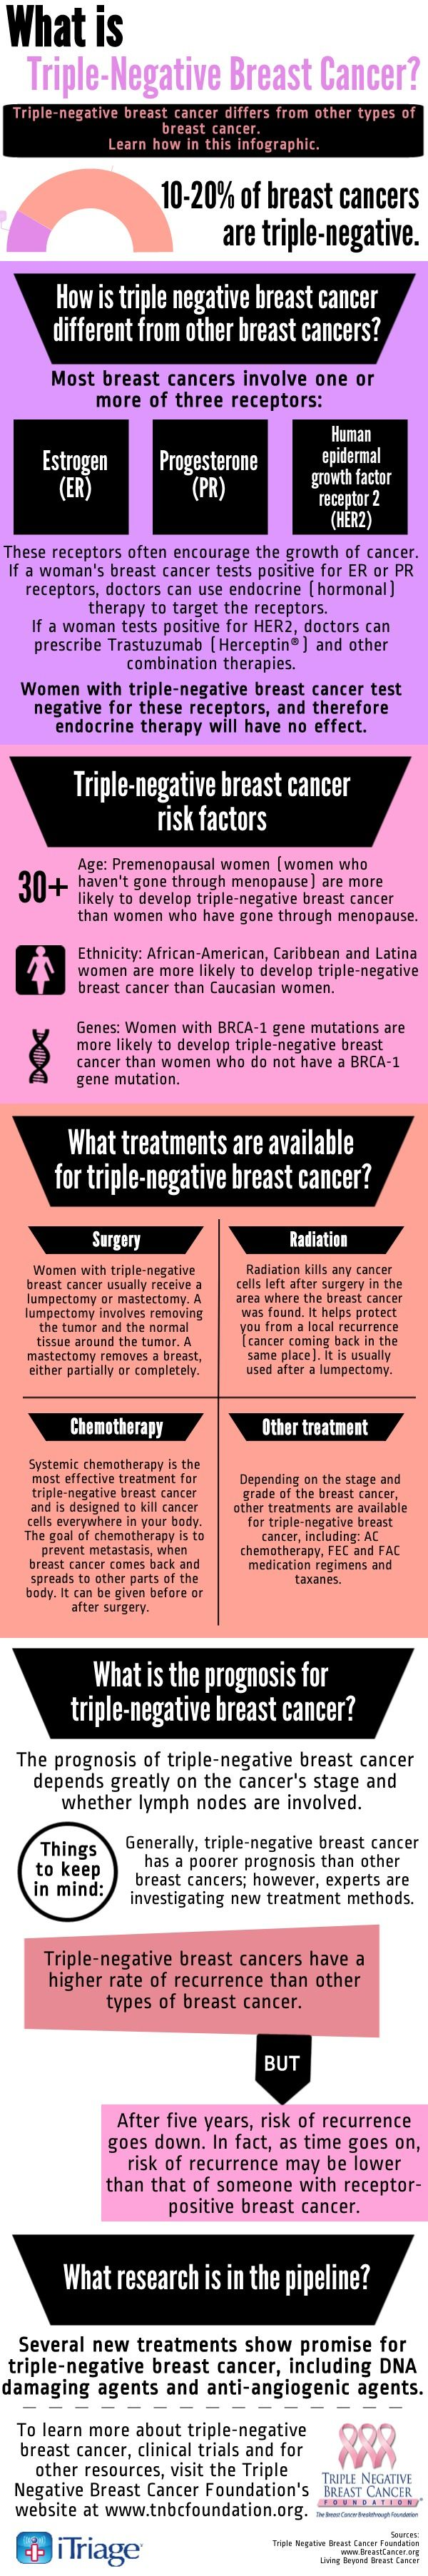 How Is Triple-Negative Breast Cancer Different? (Infographic)